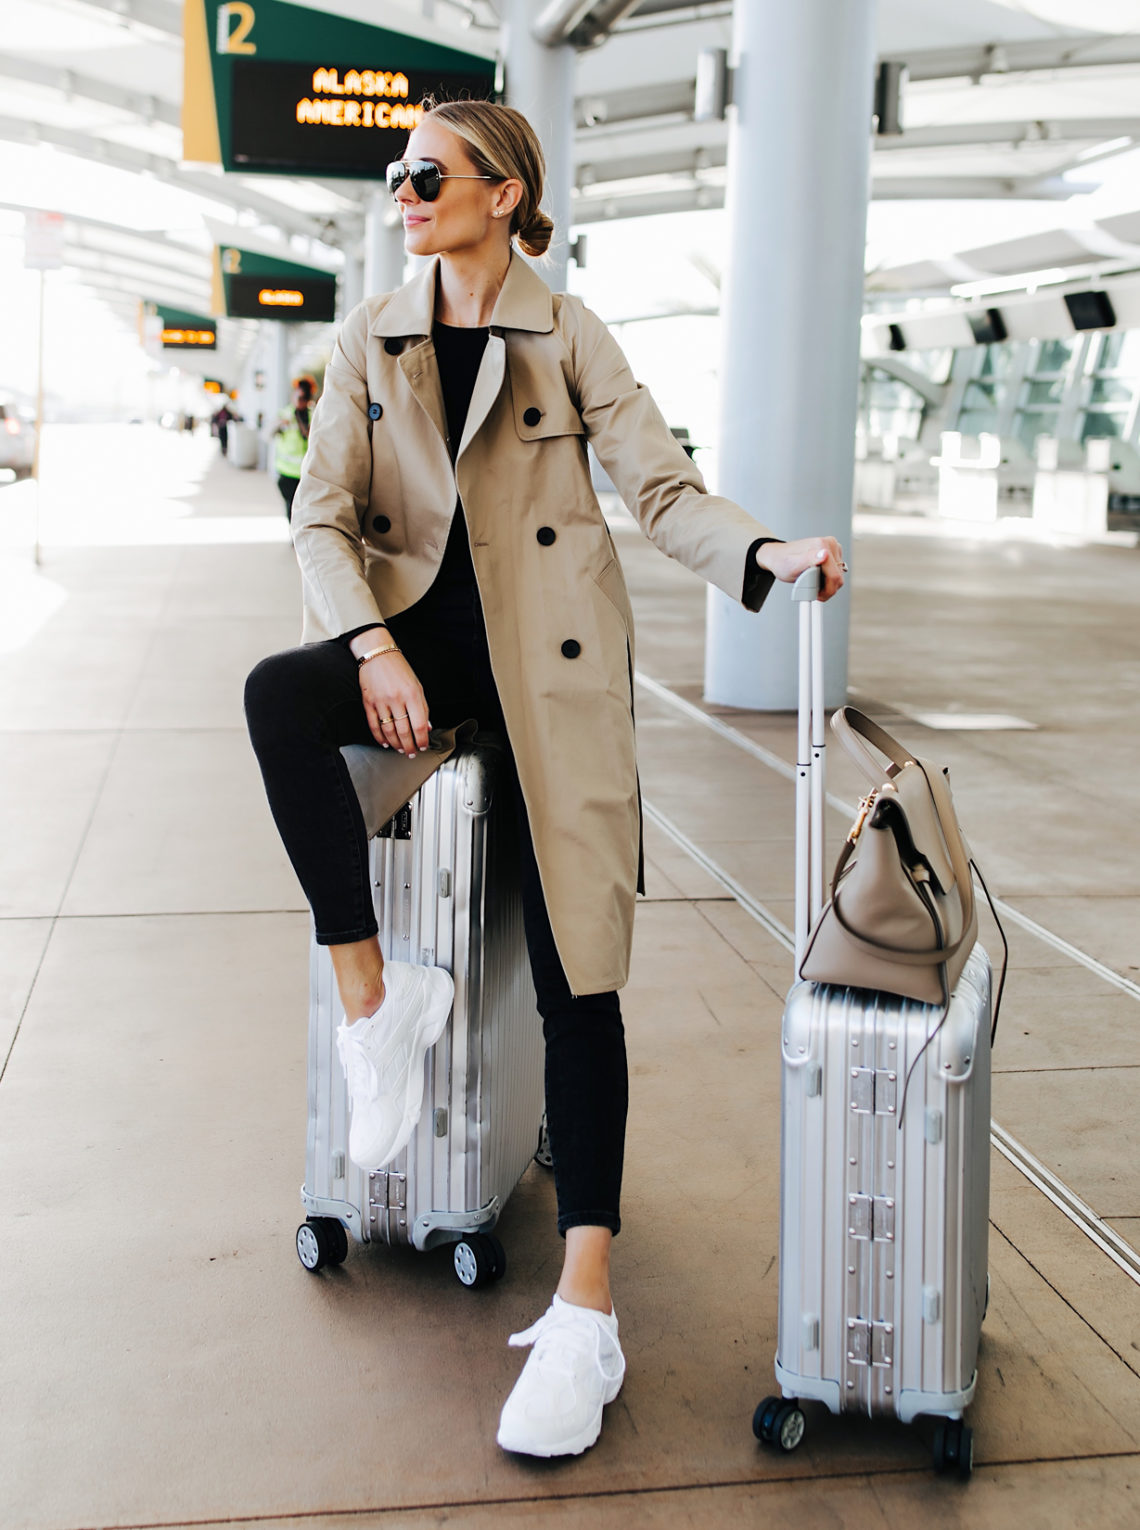 Fashion Jackson Airport Travel Outfit Trench Coat Black Skinny Jeans Reebok Aztrek White Sneakers Rimowa Luggage Featured Image